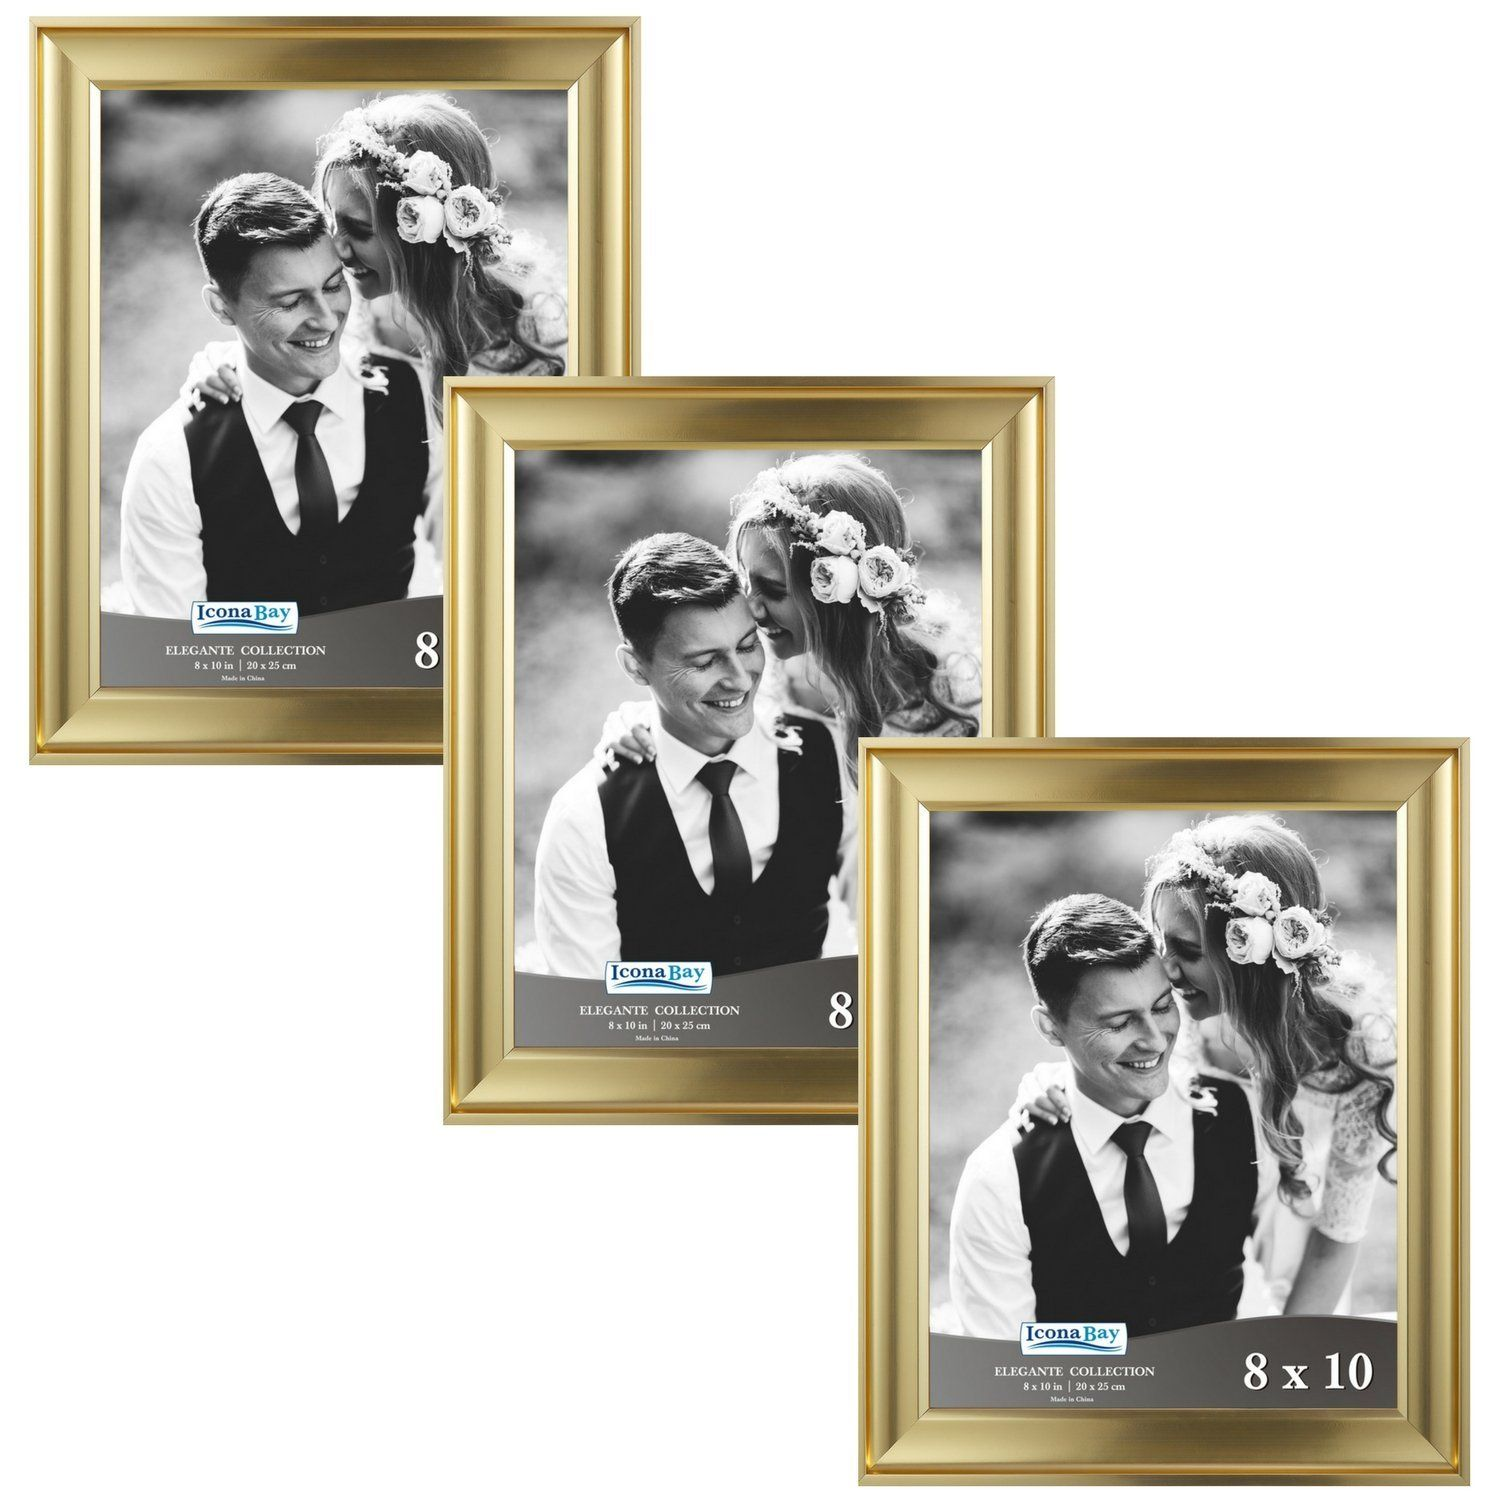 Amazon Com Icona Bay 8 By 10 Picture Frames 8x10 3 Pack Gold Photo Frames Wall Mount Hangers And Black Gold Photo Frames 8x10 Picture Frames Photo Frame